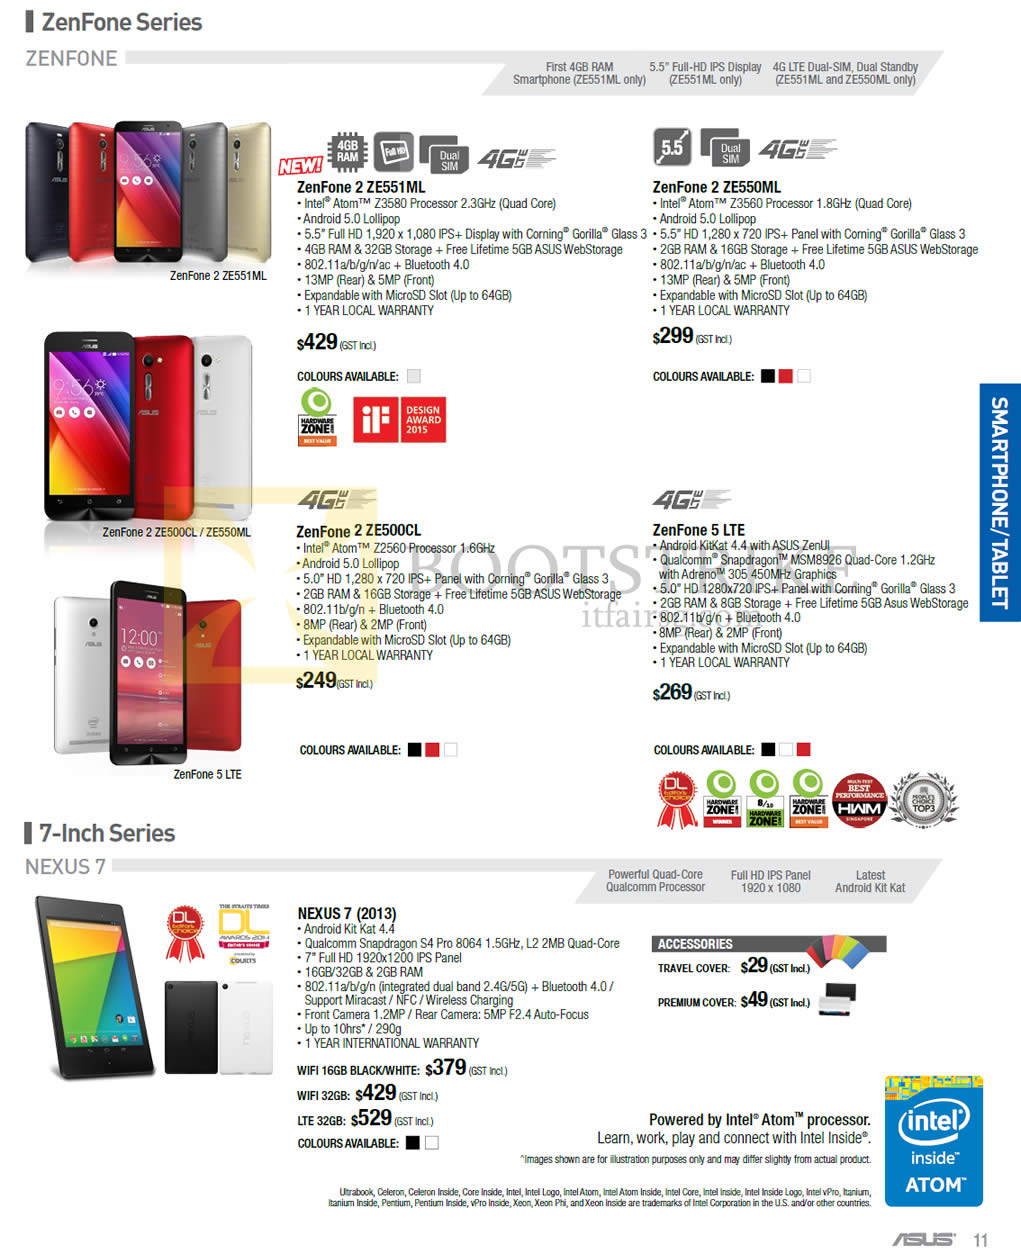 PC SHOW 2015 price list image brochure of ASUS Smartphones, ZenFone 2 ZE551ML, ZE550ML, ZE500CL, ZenFone 5, NEXUS 7